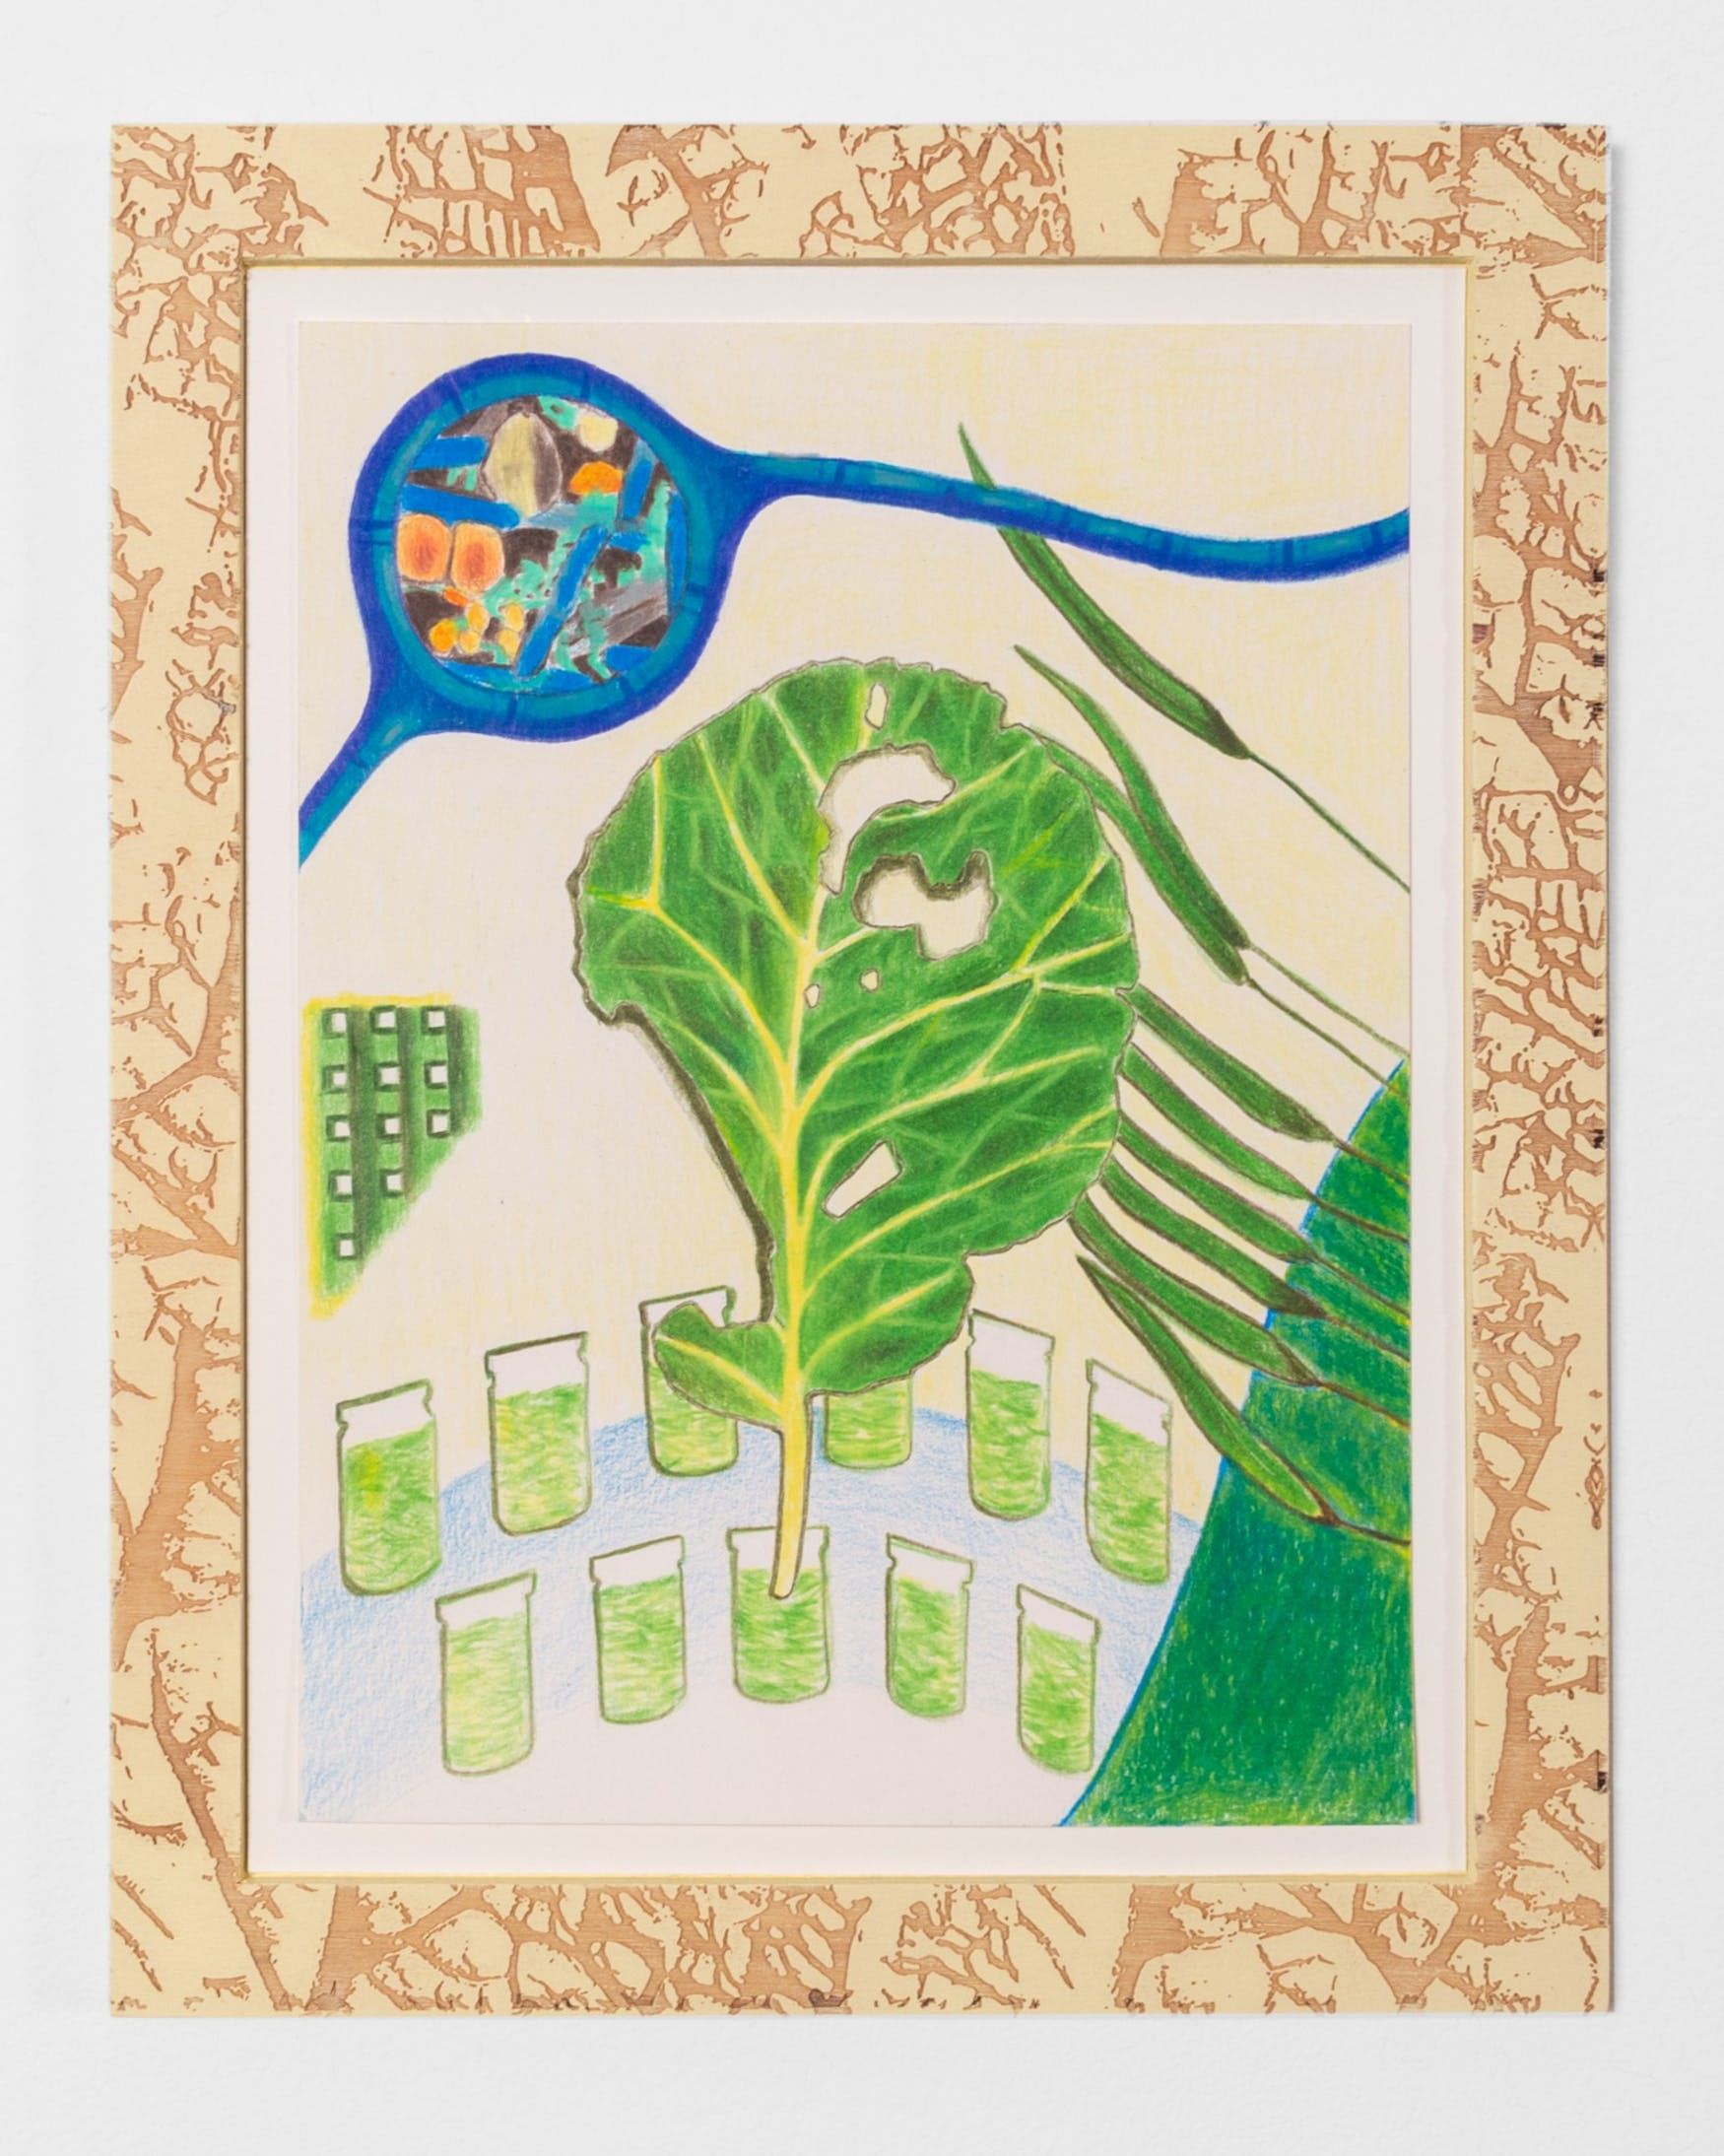 cabbage-looper-leaf-tracings-2019-ongoing-colored-pencil-on-paper-9-x-12-1